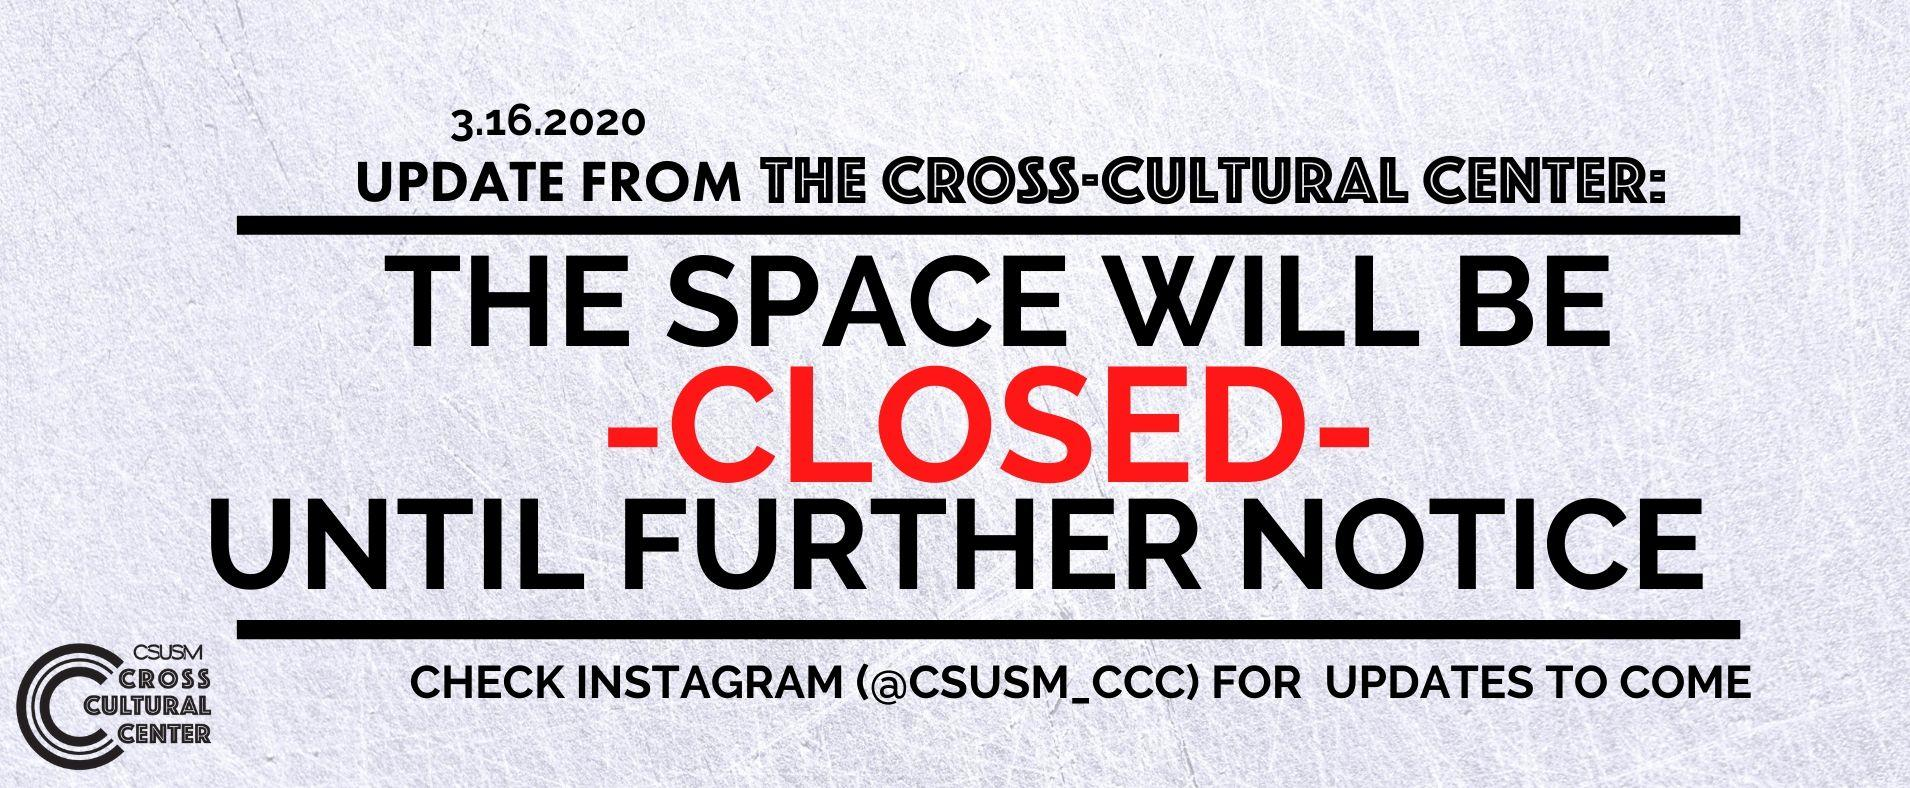 Cross-Cultural Center space closed - Check our Instagram for updates to come